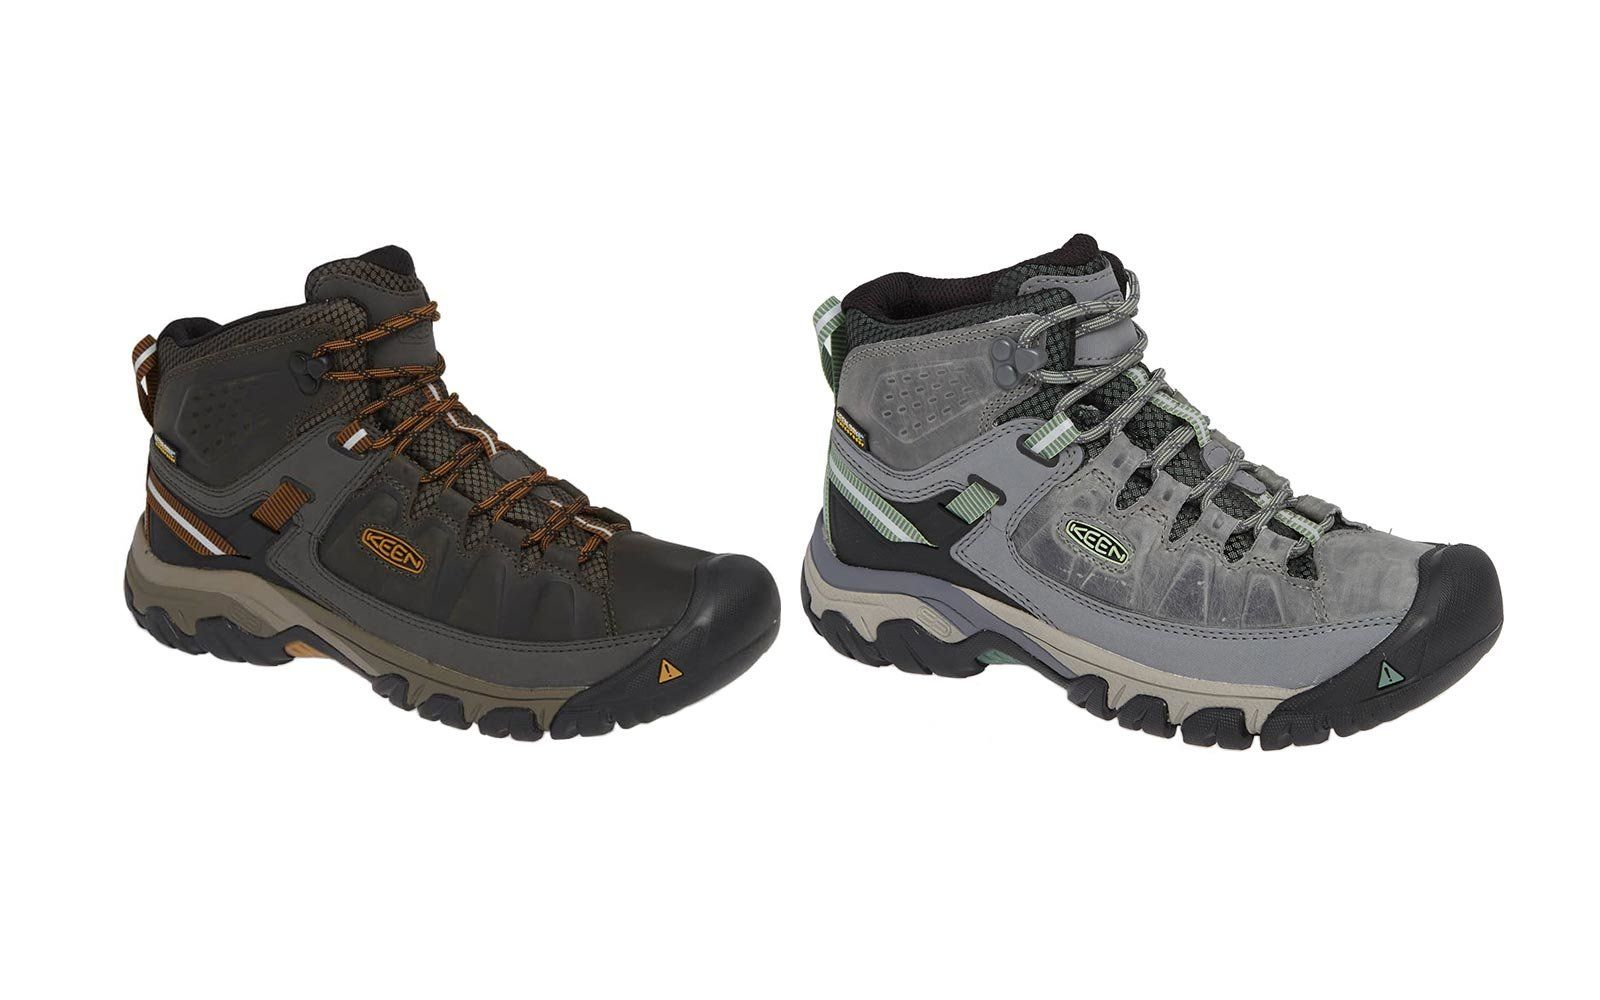 b1949a449 The Best Waterproof Hiking Boots for Men and Women. Keen Targhee III Mid WP  | If you're planning on hiking through wet or cooler trail conditions, ...